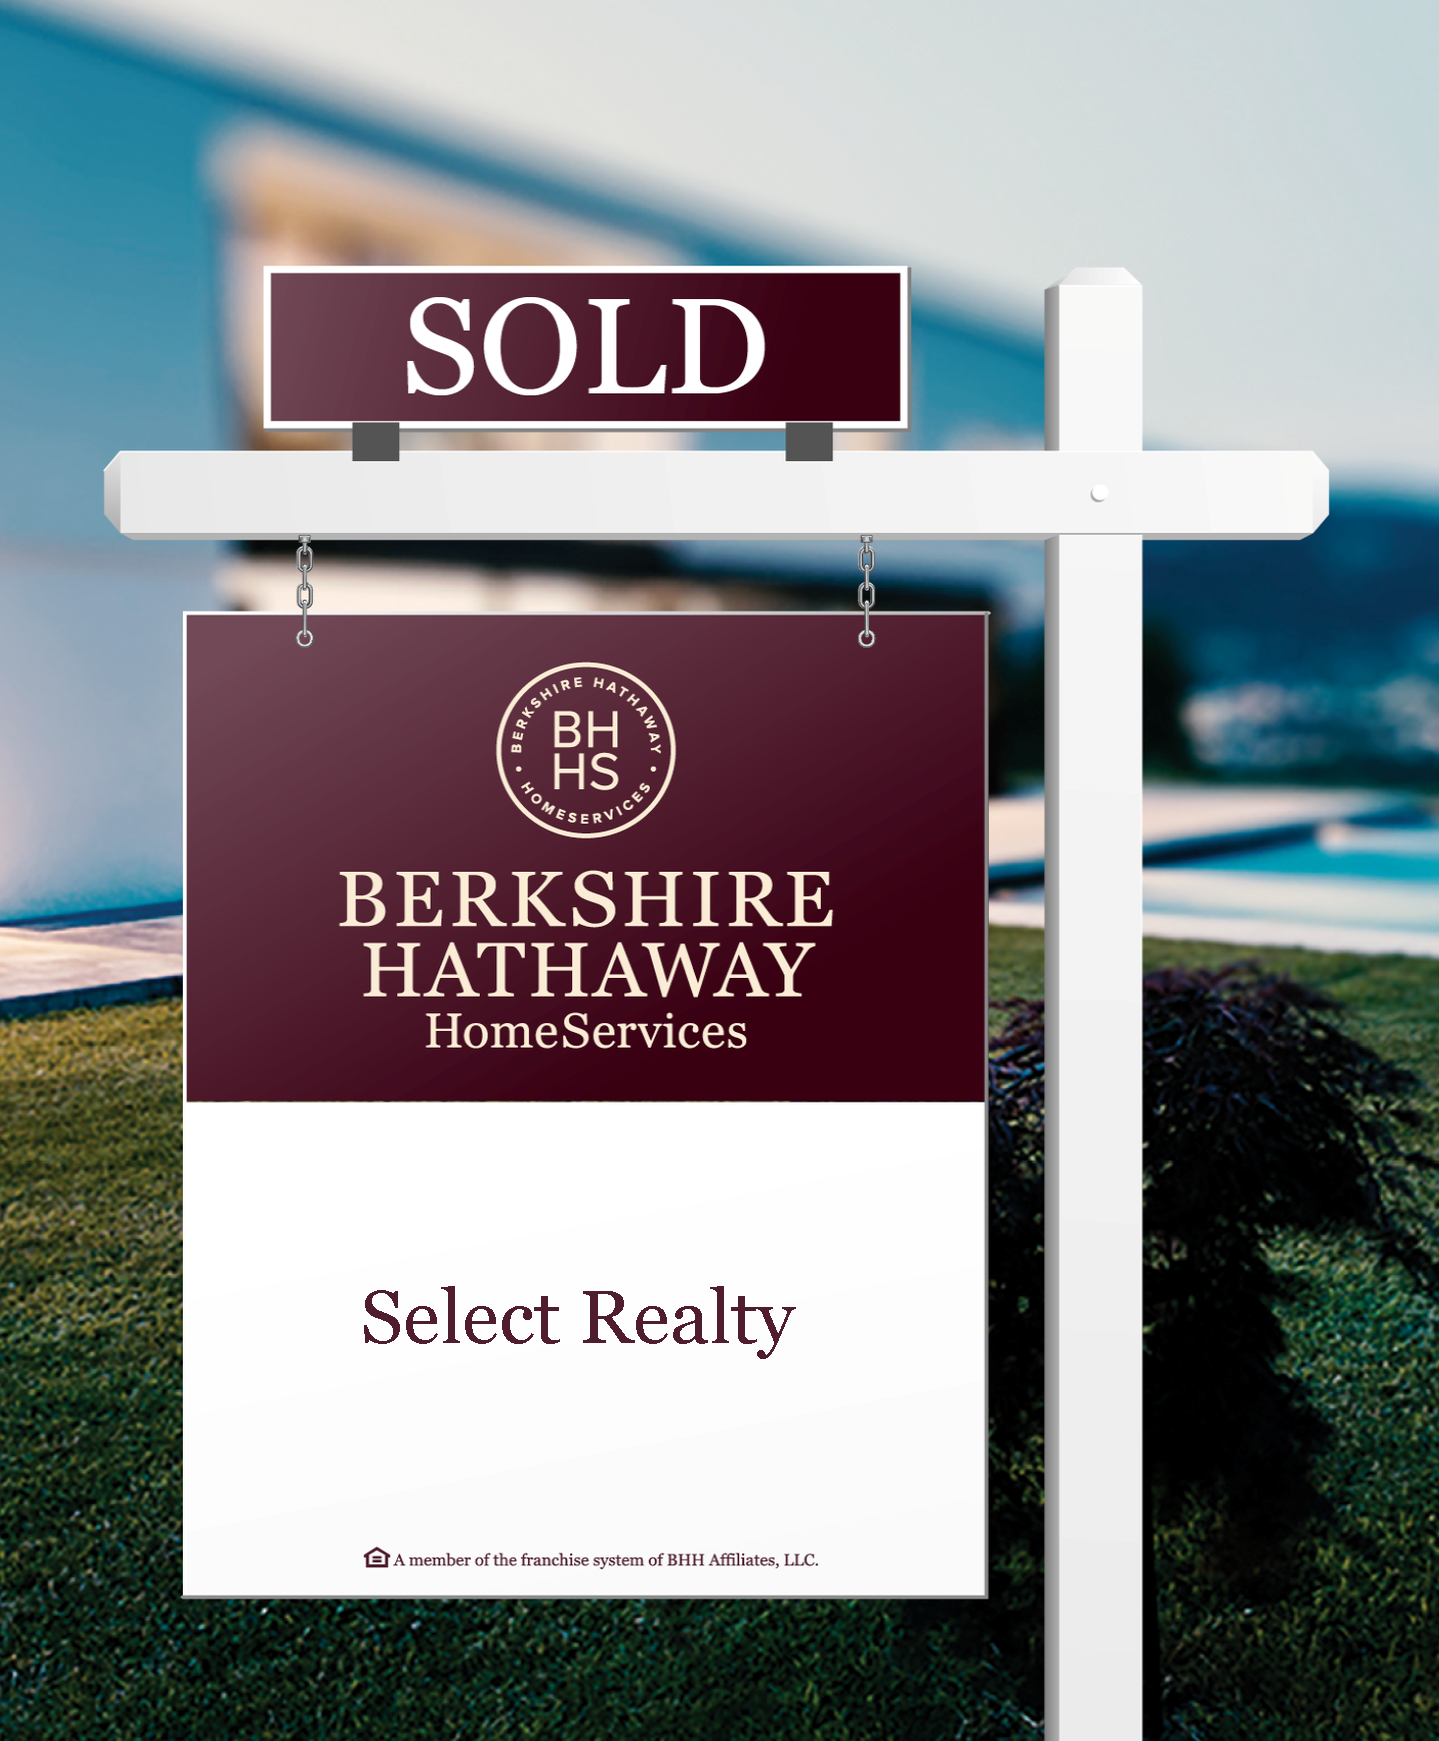 Berkshire Hathaway HomeServices Select Realty yard sign